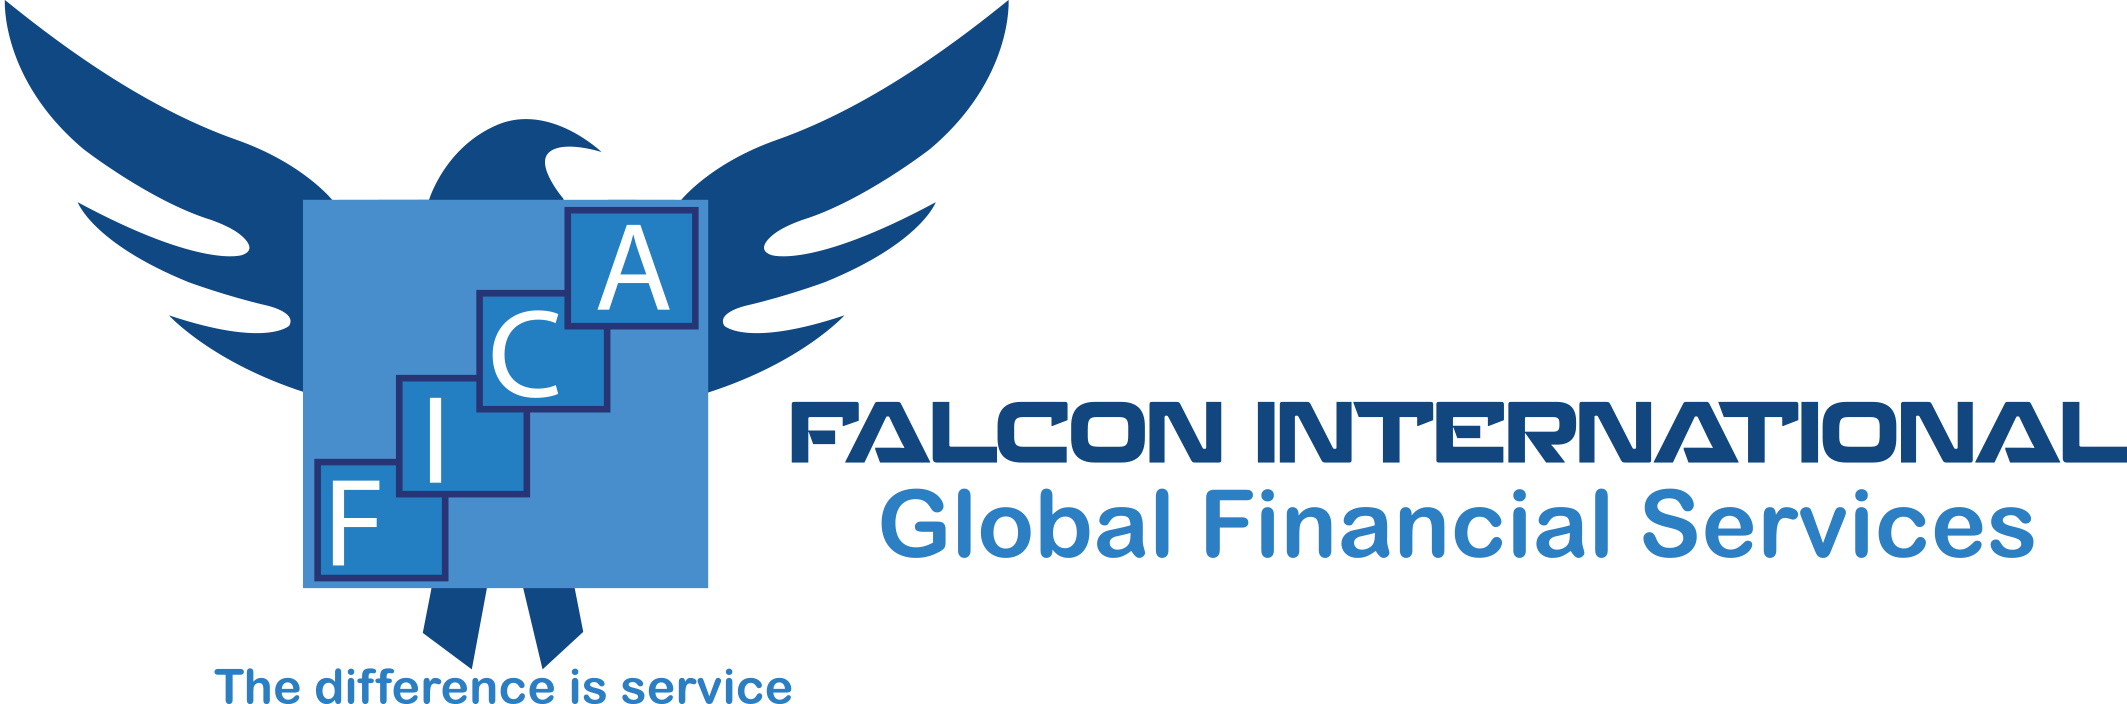 Falcon Intenational Global Financial Services